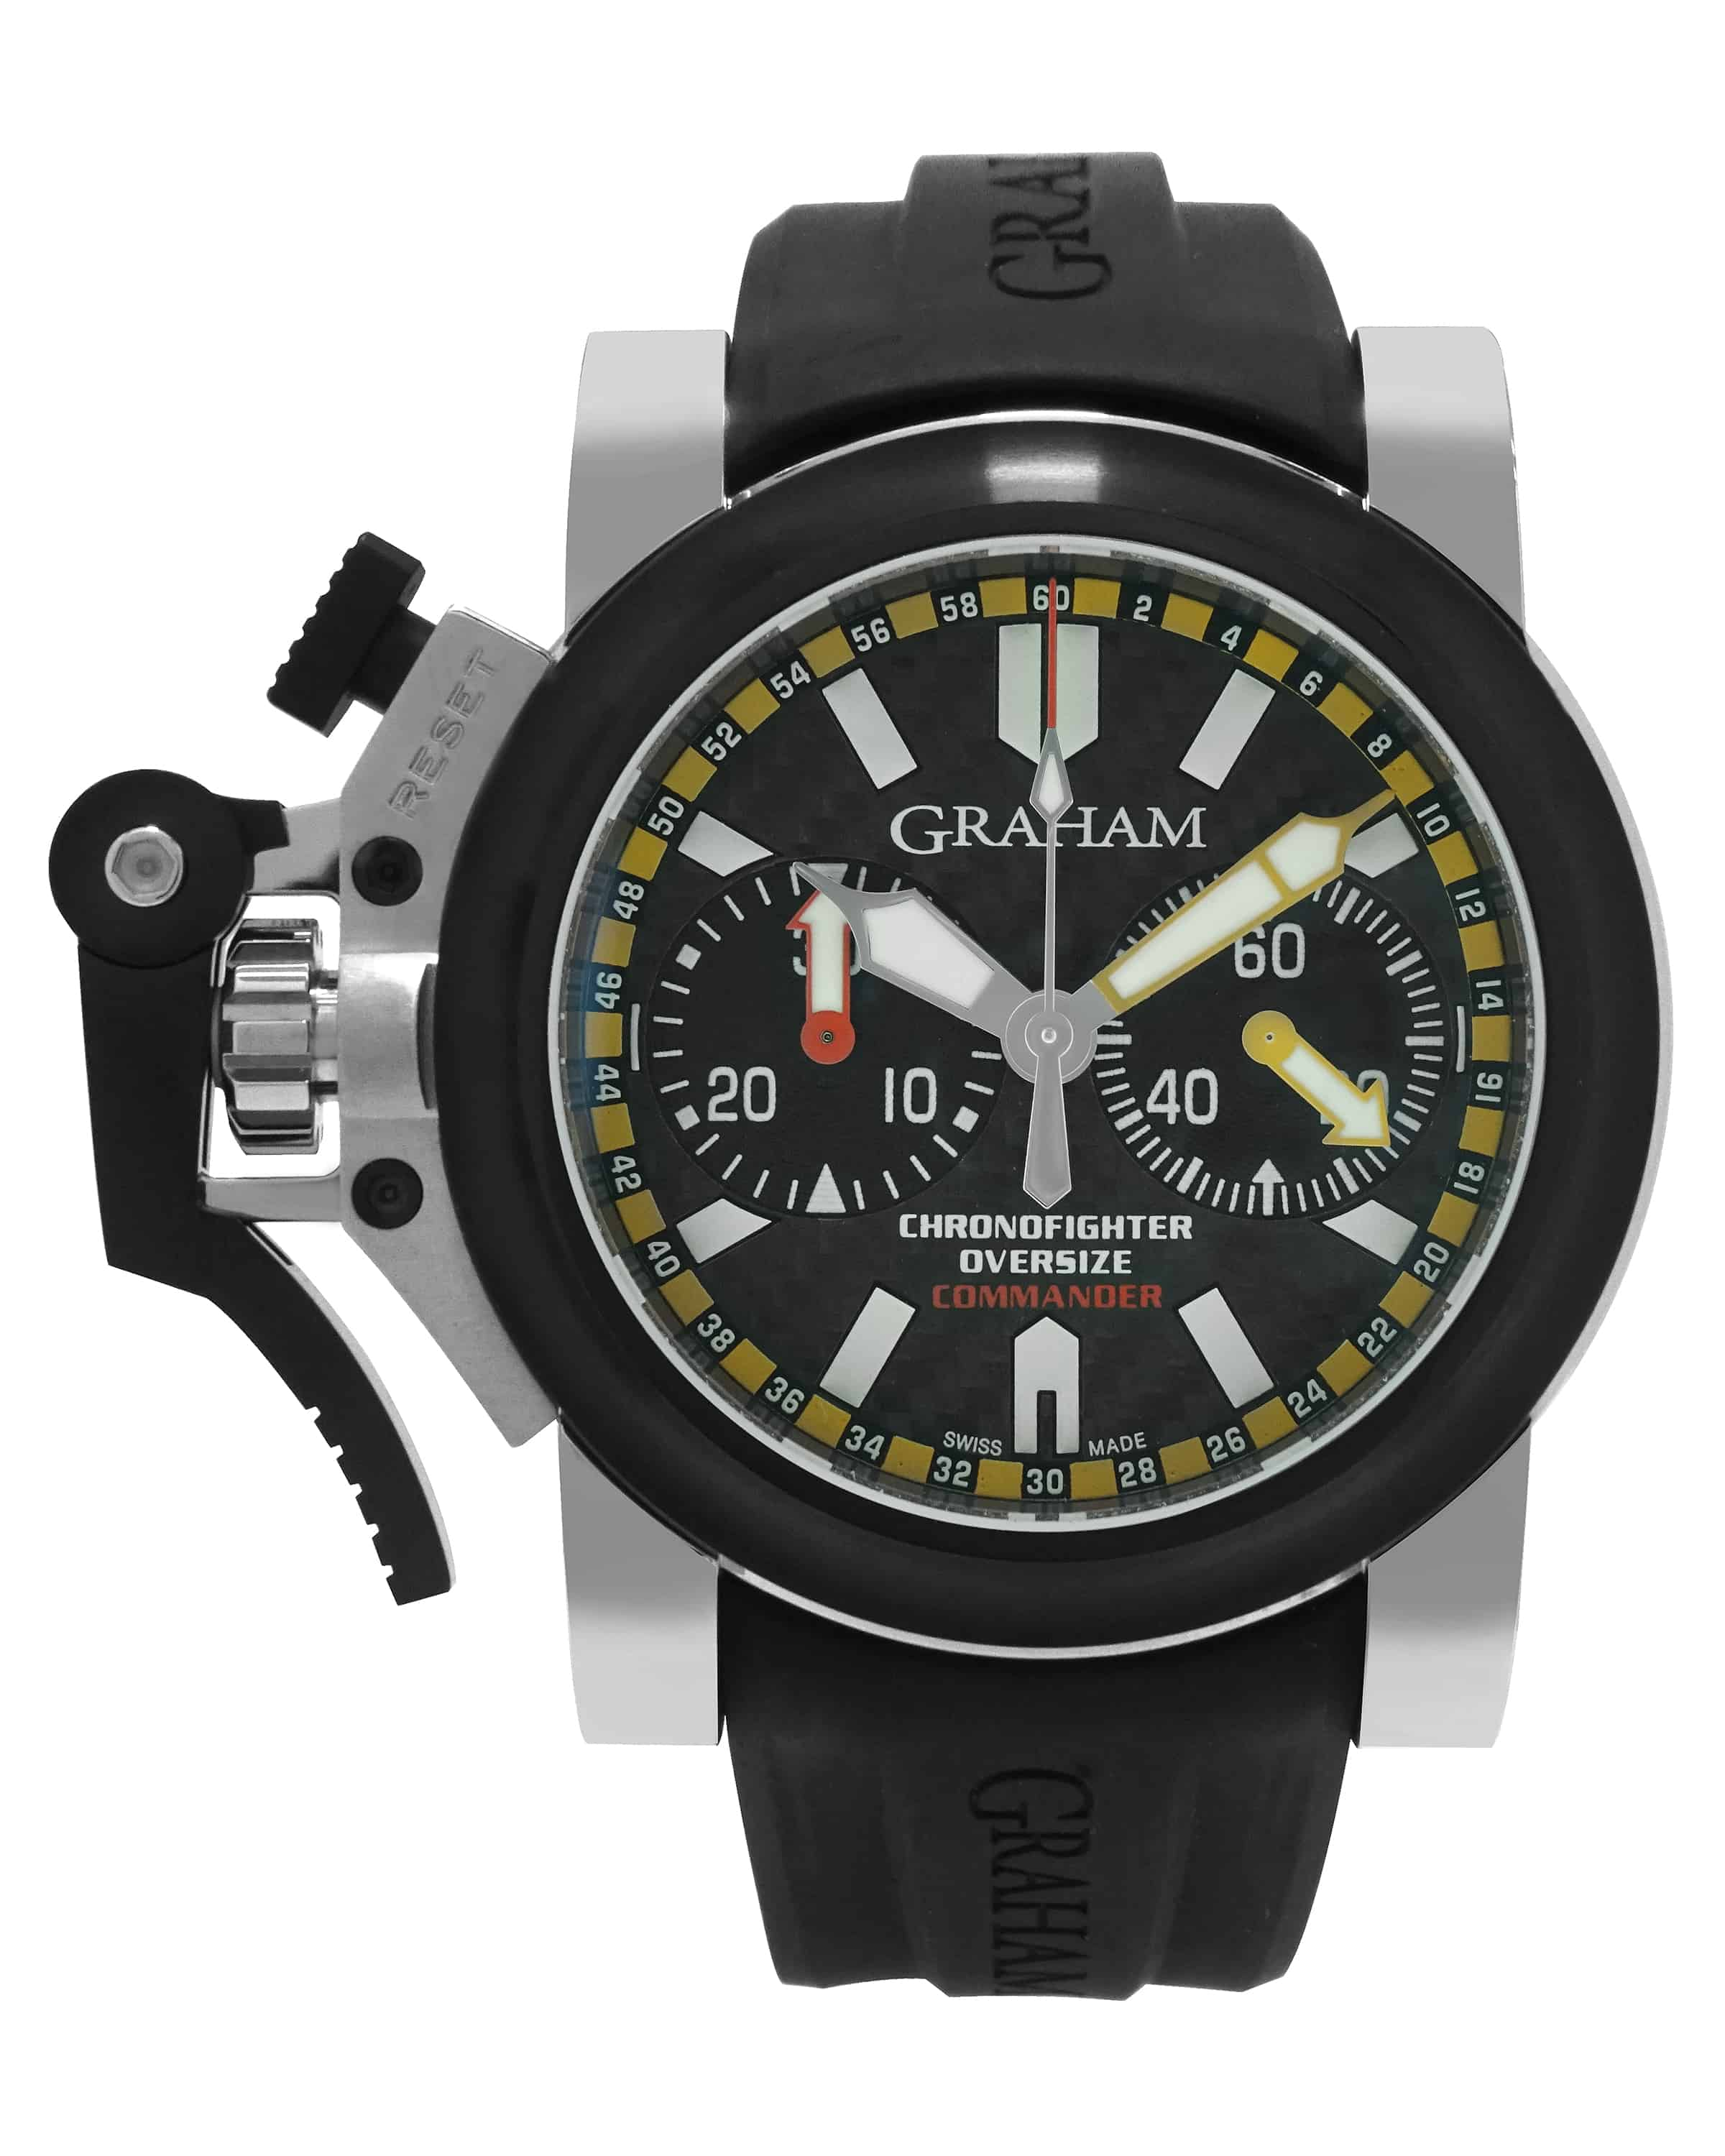 Graham Chronofighter Oversize Commander Automatic Chronograph Men's Watch 2OVBV.B01A